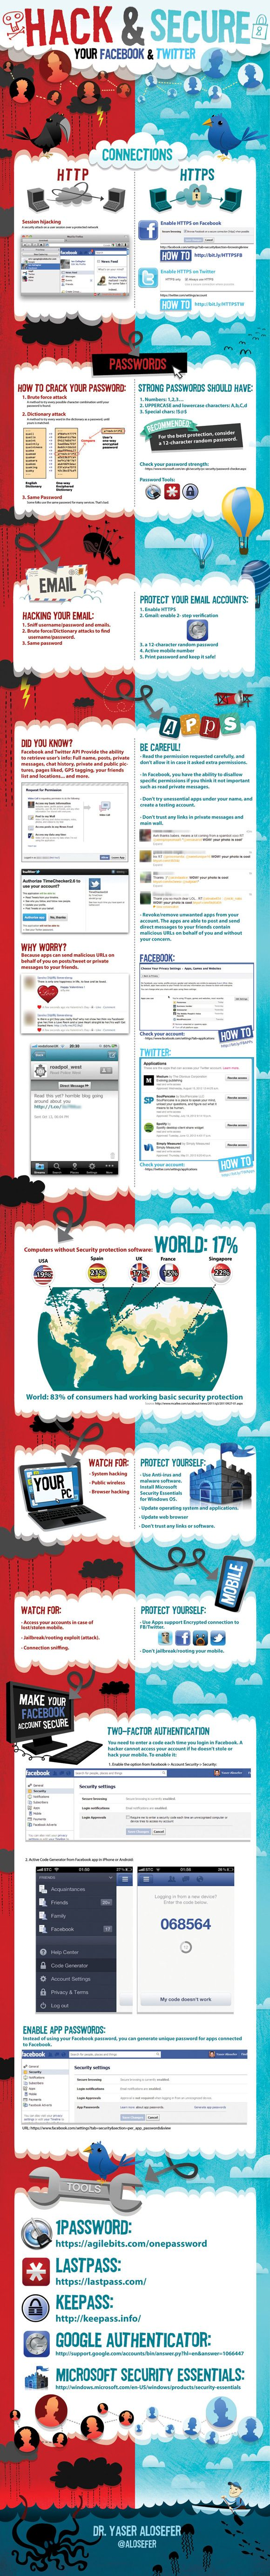 Hack & Secure Your #Facebook & #Twitter #infographic #privacy